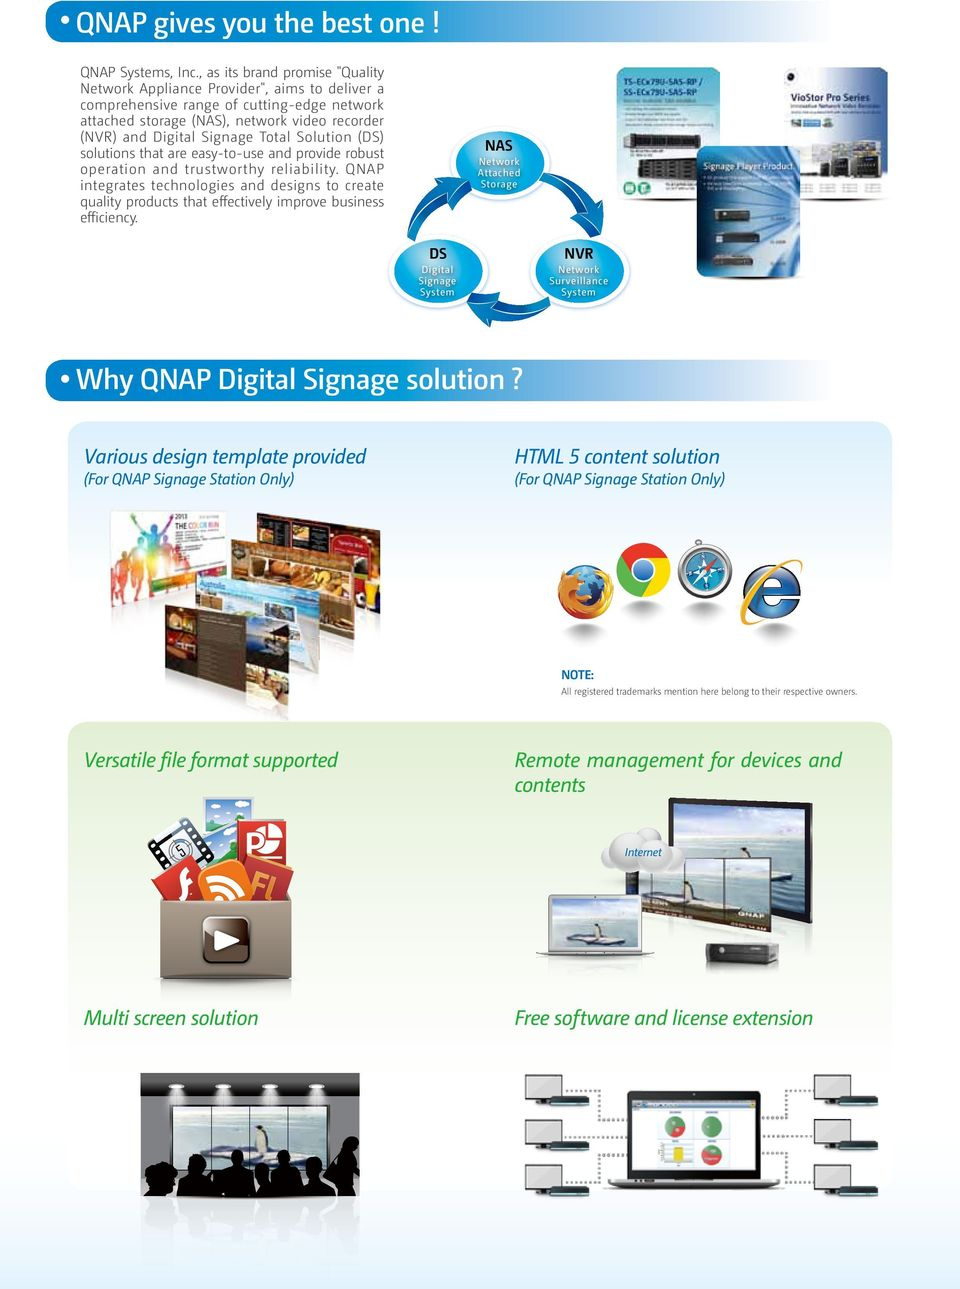 QNAP gives you the best one! Why QNAP Digital Signage